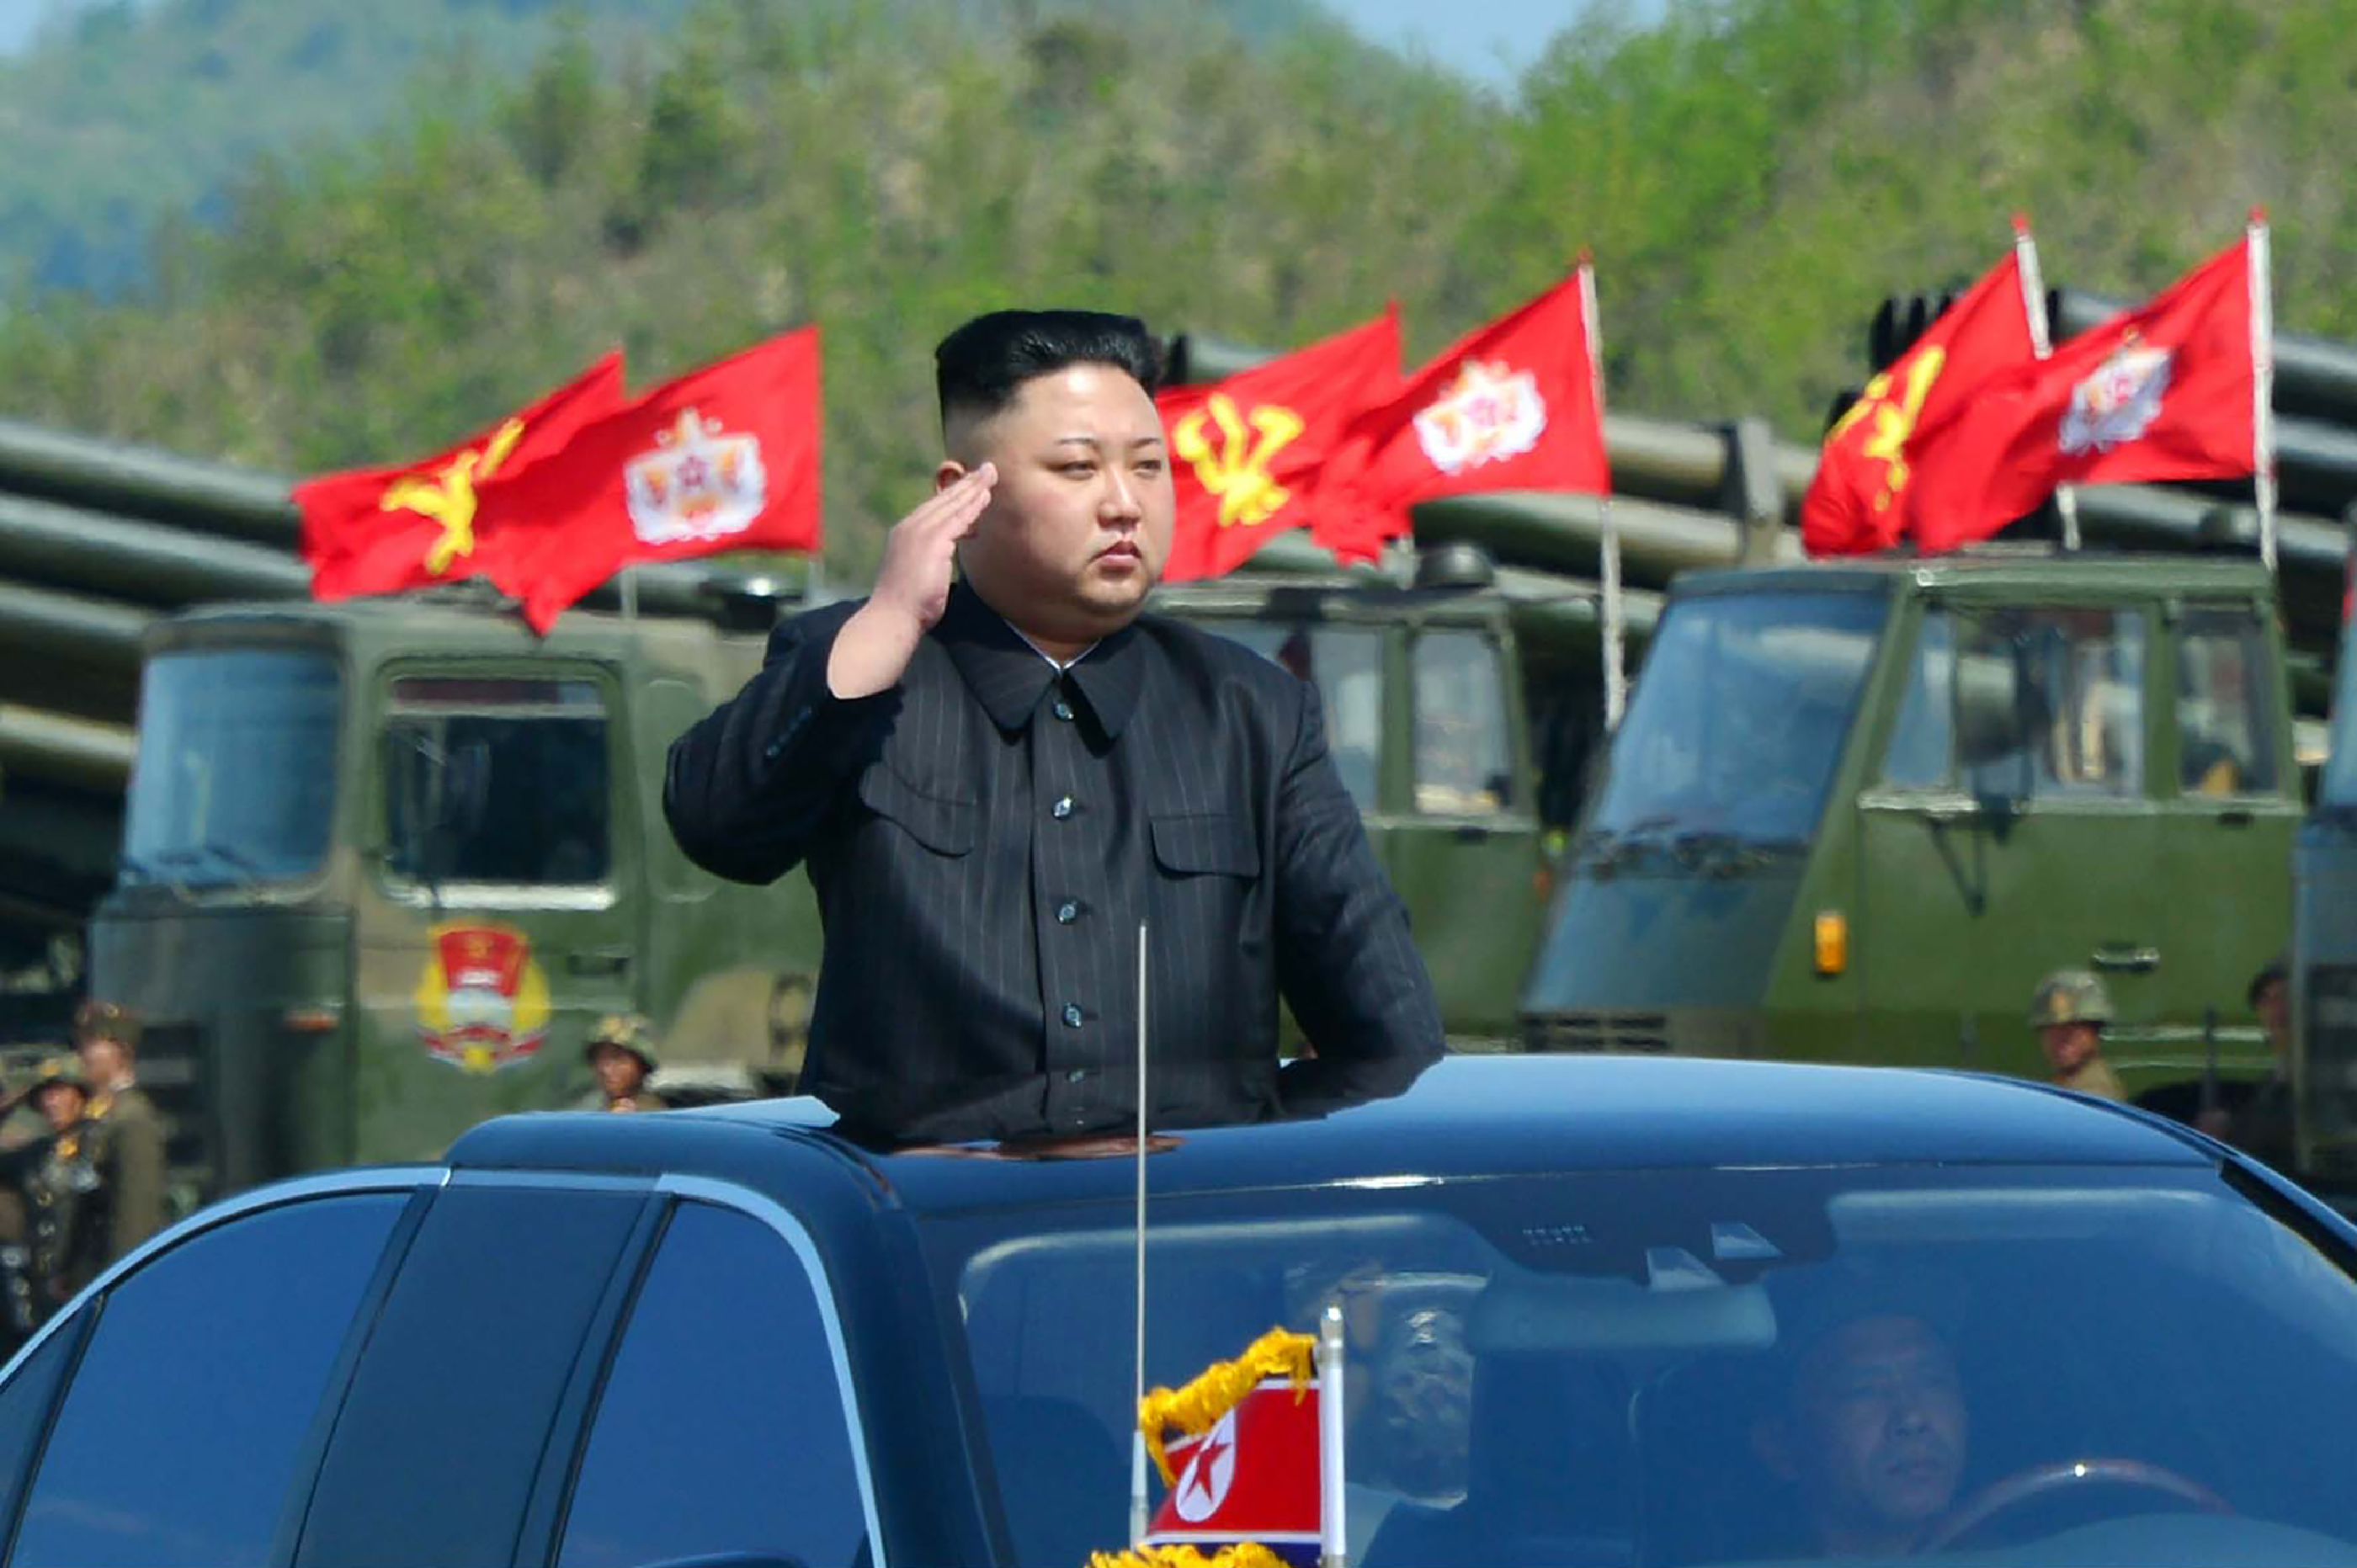 This undated picture released by North Korea's official Korean Central News Agency (KCNA) on April 26, 2017 shows North Korean leader Kim Jong-Un.